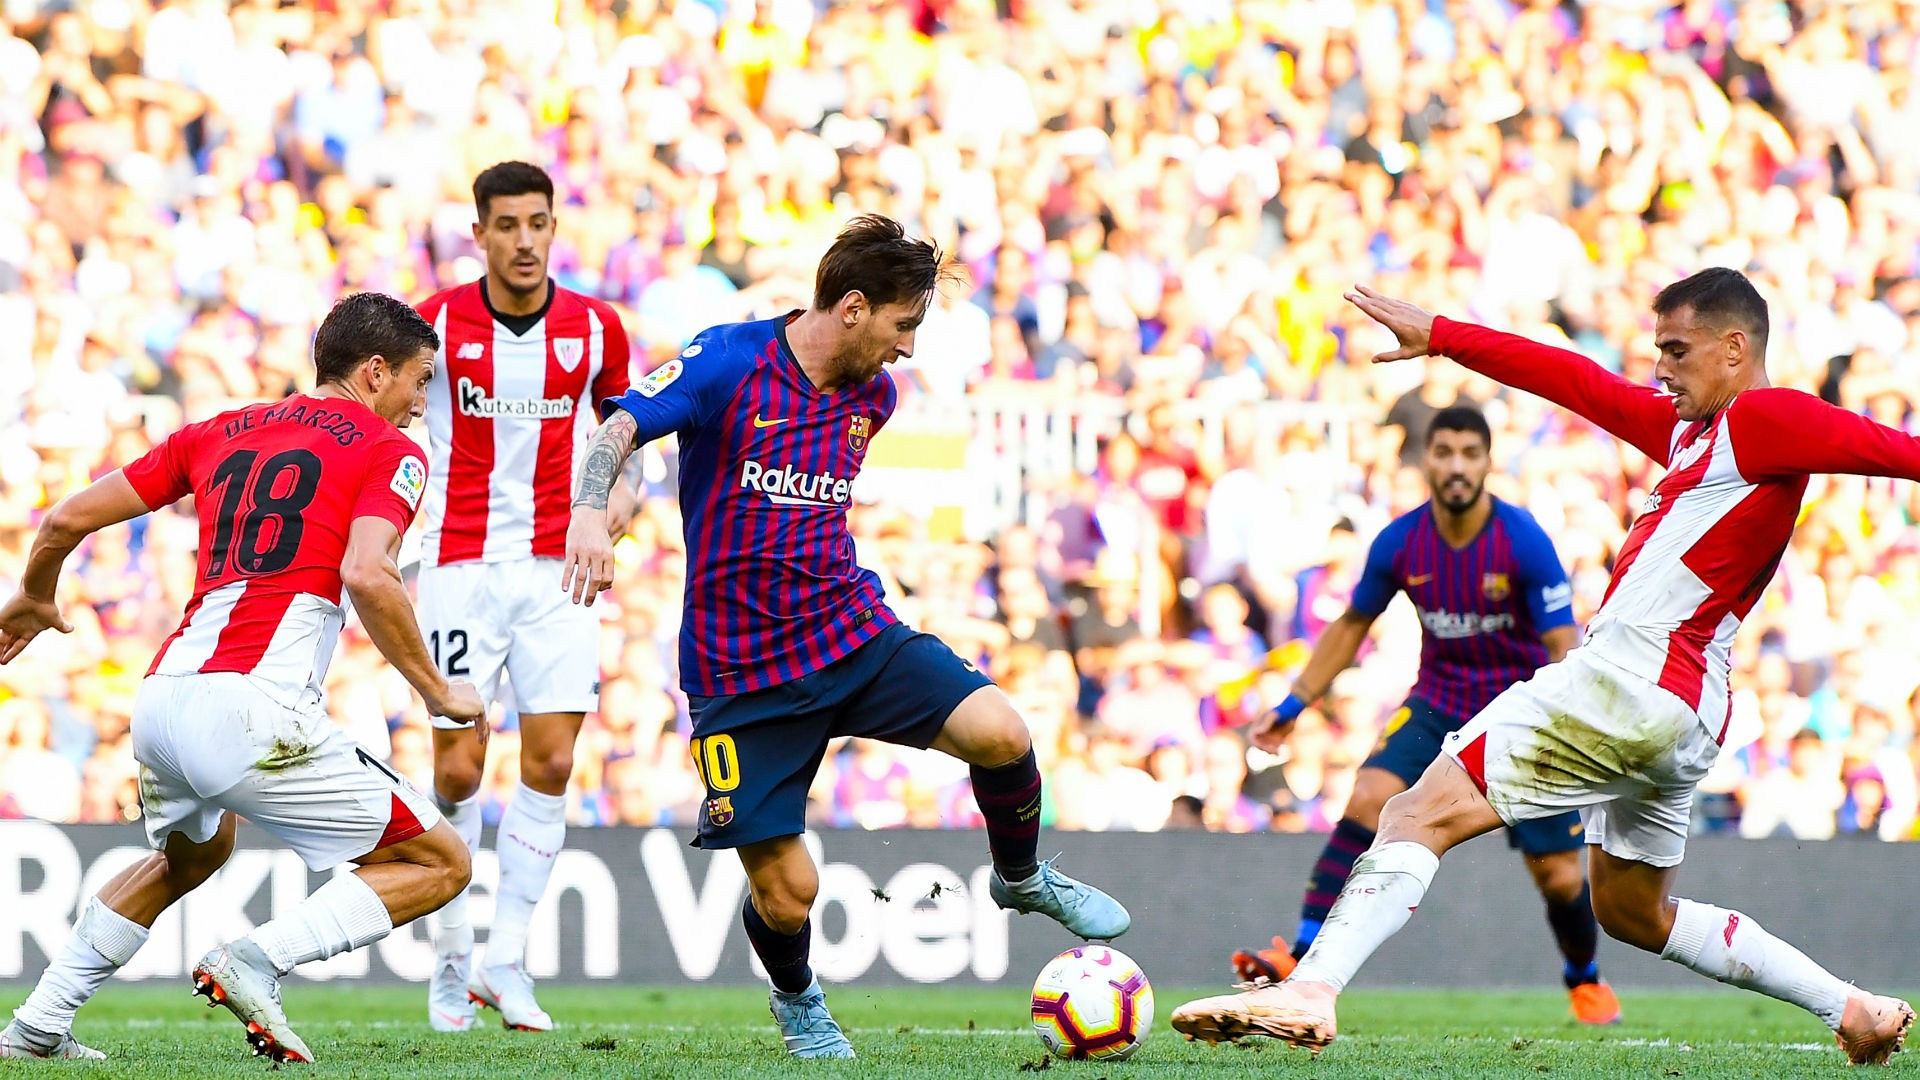 Barcelona player ratings vs Leganes: Messi and Co. shocked by the hosts